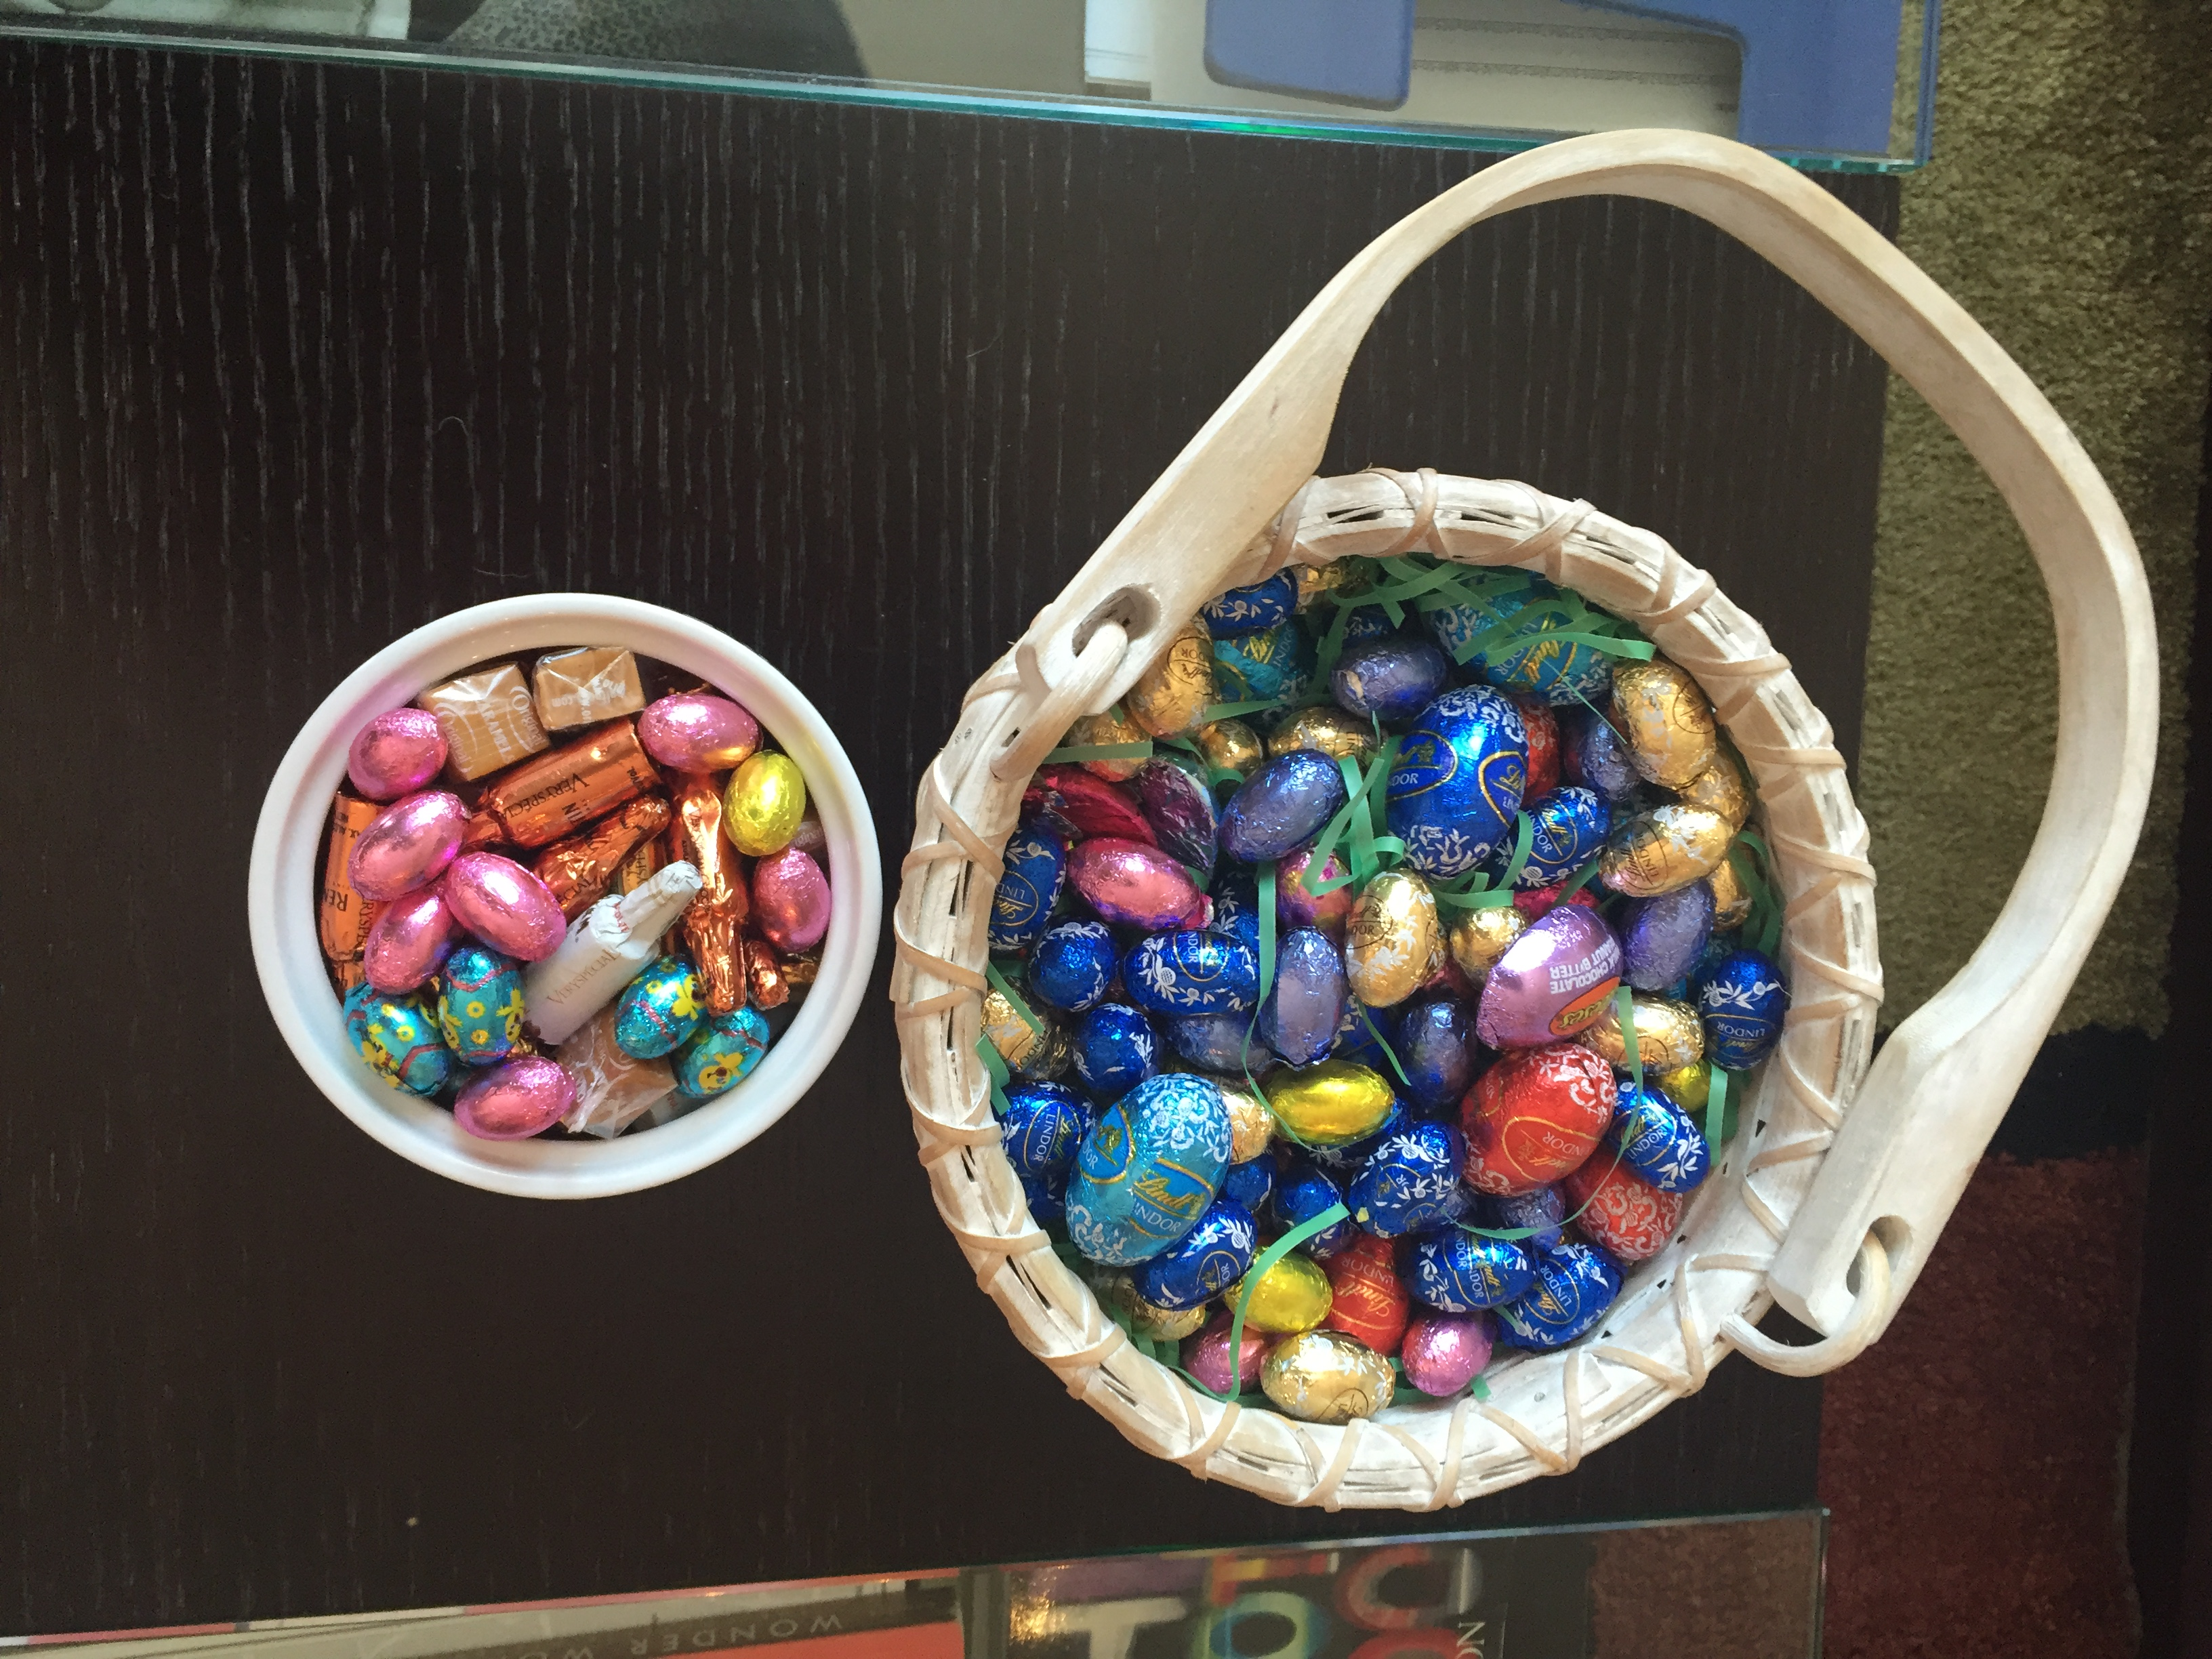 Two baskets of chocolate Easter eggs. CITYNEWS/Diana Pereira